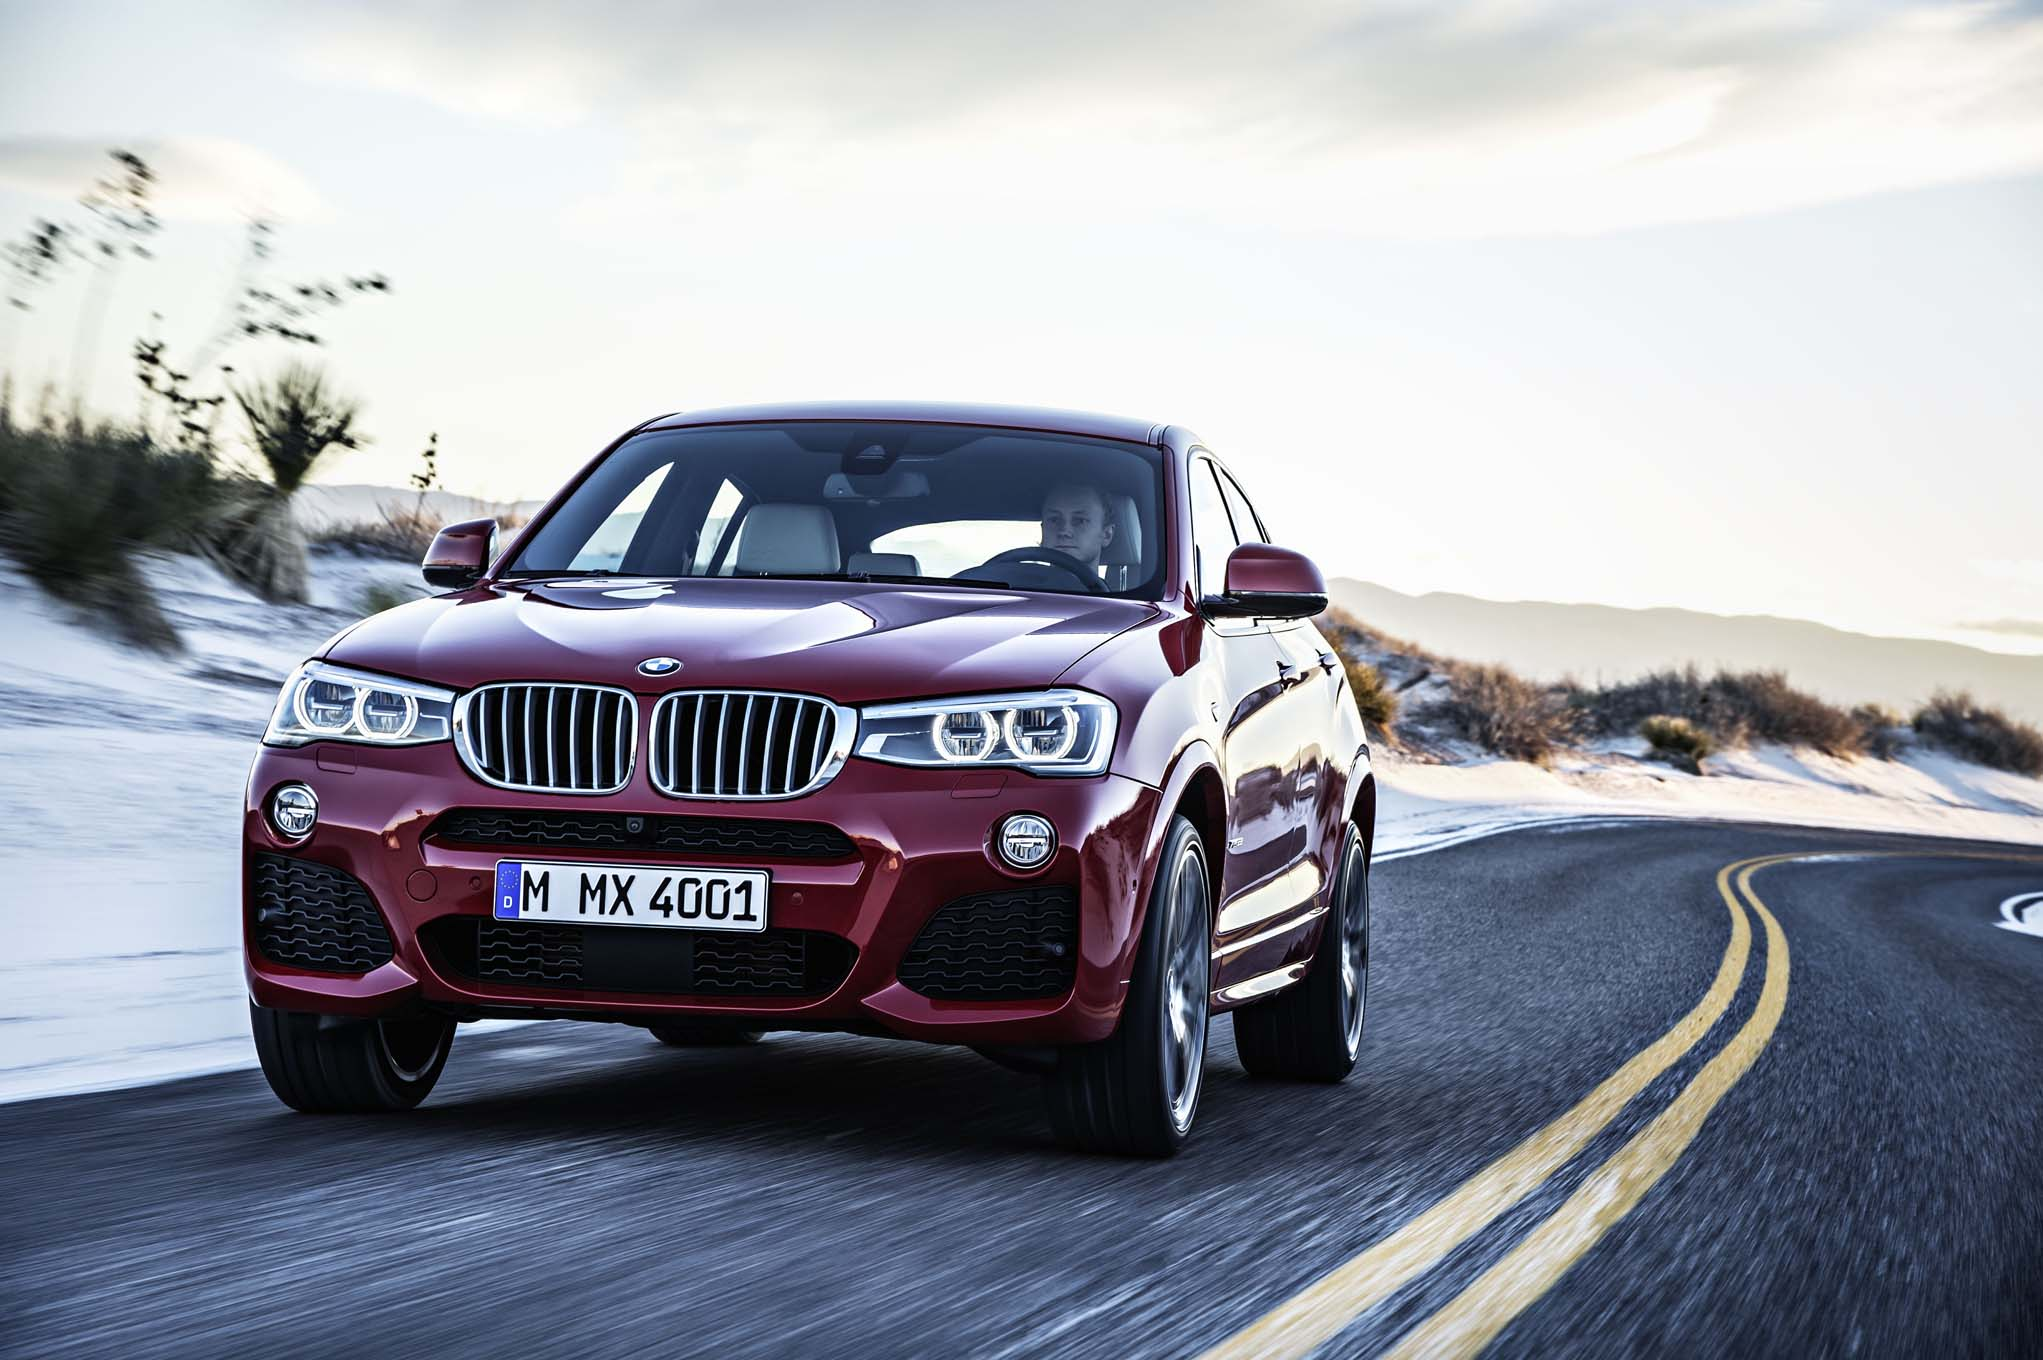 2015 Bmw X4 Road Performance (Photo 11 of 13)